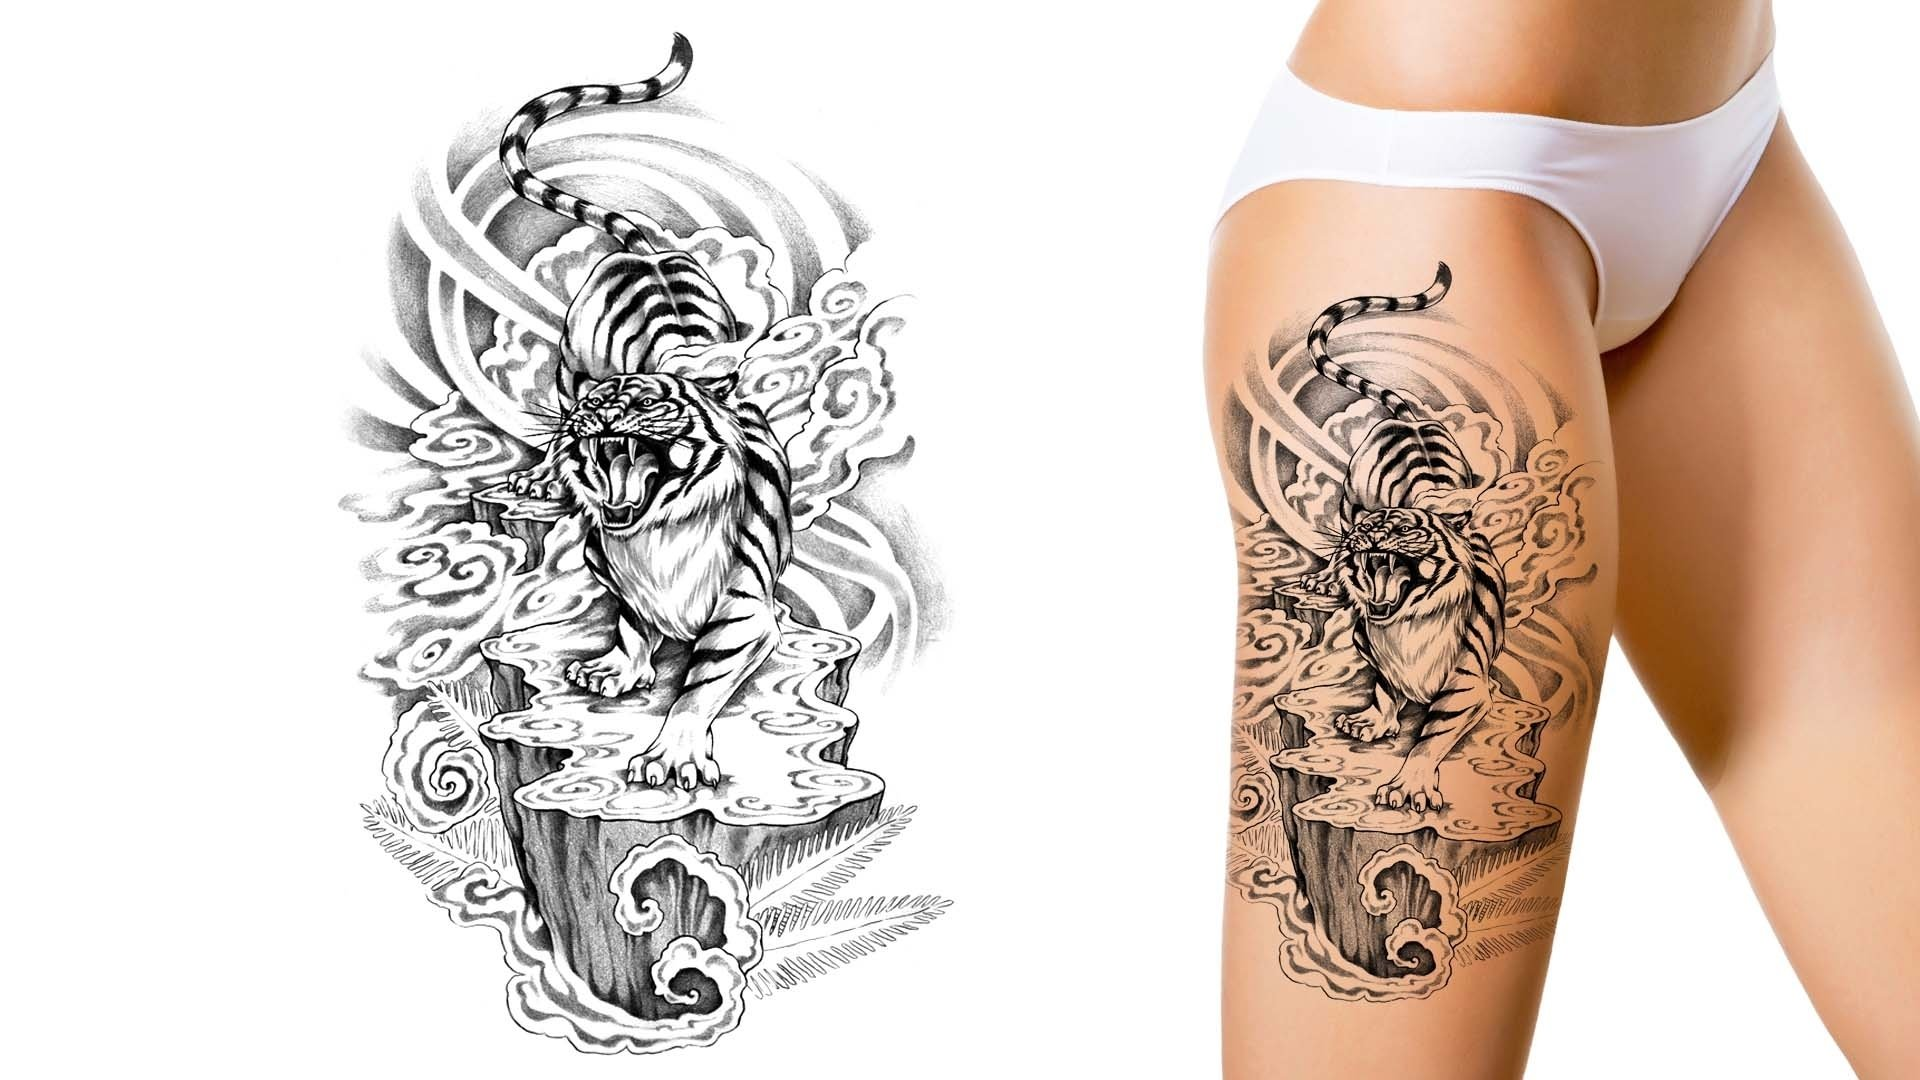 get custom tattoo designs made online | ctd